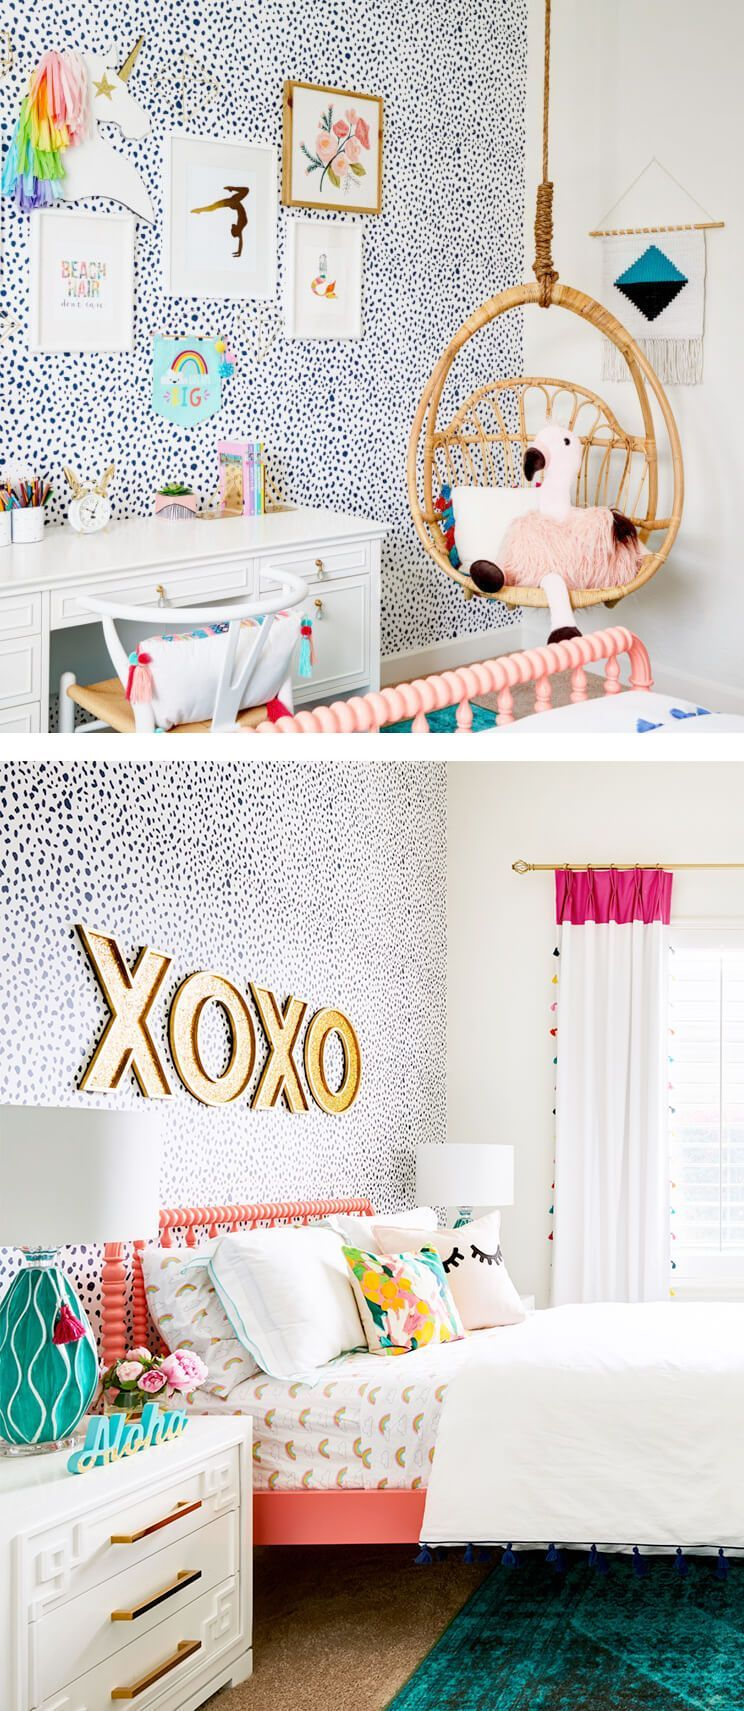 Kids room wallpaper trend predictions of 2019 images